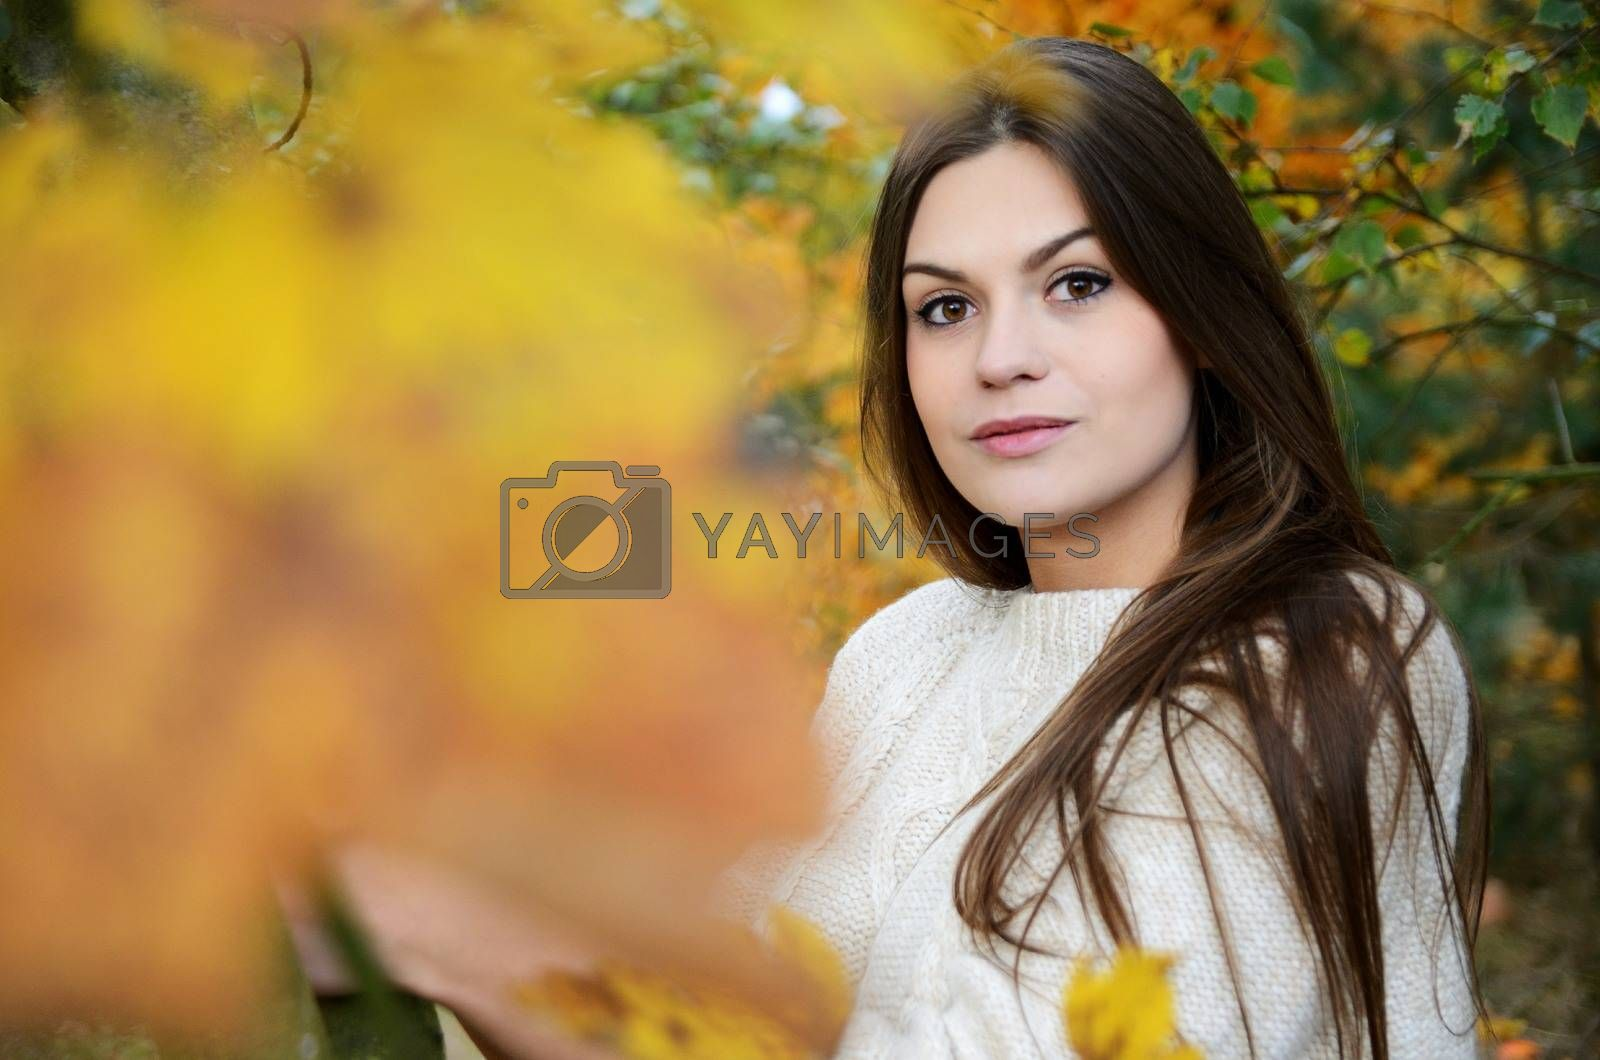 Polish forest with colorful leaves. Portrait of young female model with autumn scenery.